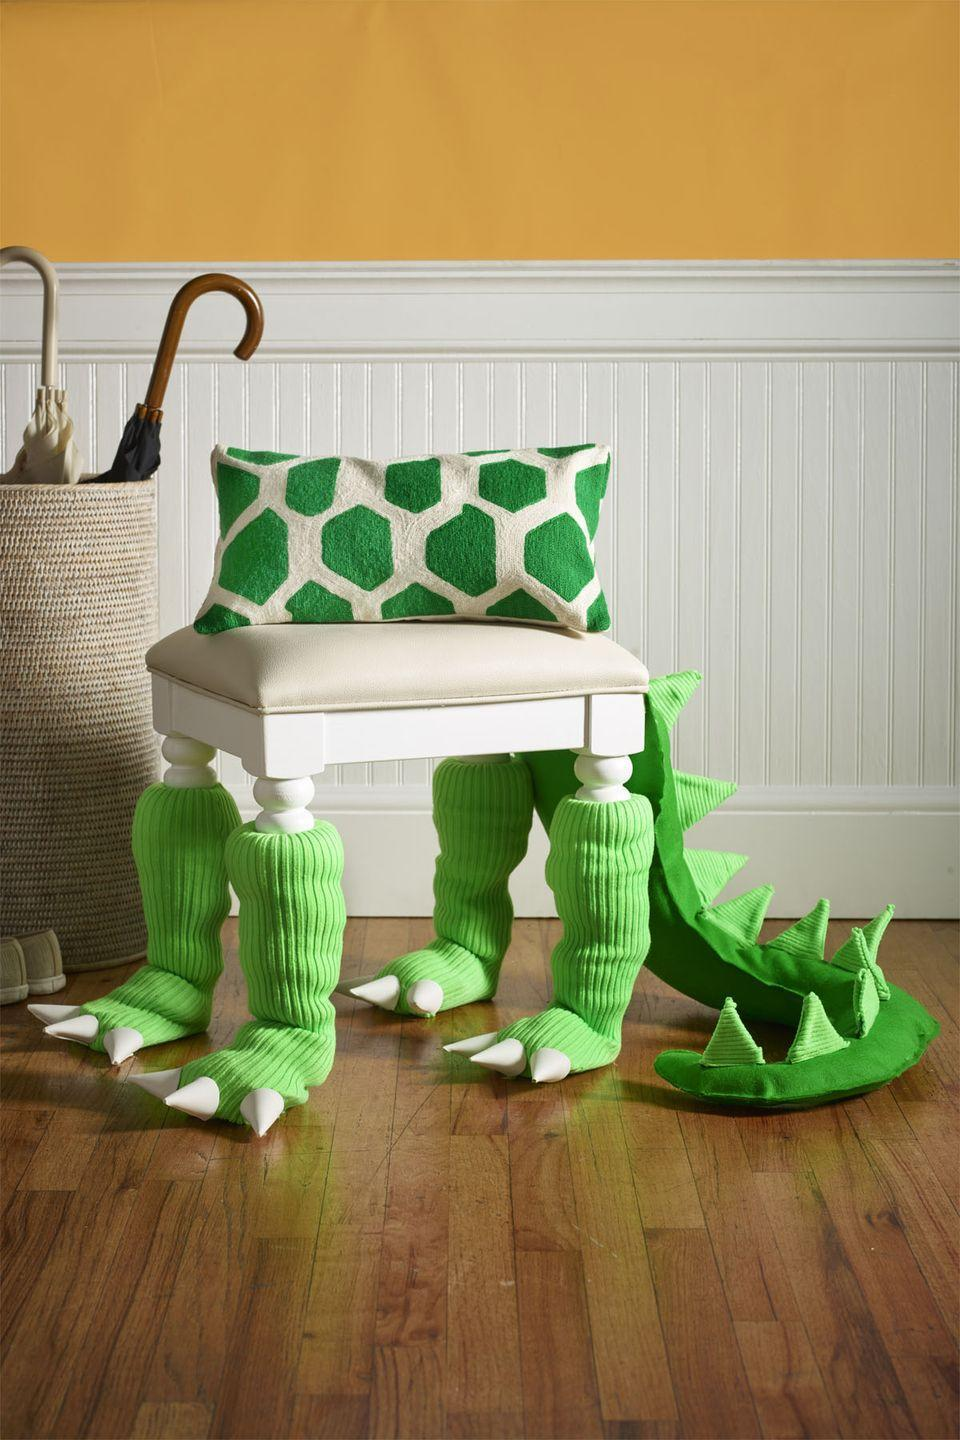 """<p>Green leg warmers are a fun and easy way to add Halloween flair to your entryway bench.</p><p><strong>1. </strong>Tape pillow batting around bench legs, then slip on leg warmers and leave <span>6</span>"""" of fabric at bottom for feet.</p><p><strong>2. </strong>Cut <span>3</span>"""" off the top of a party hat; discard. Stuff bottom piece of hat with pillow batting and slide into bottom of leg warmer; hot-glue edges to secure. Repeat for other feet.</p><p><strong>3. </strong>To make claws, roll a <span>4</span>"""" semicircle of white foam into a cone and hot-glue along straight edge. Repeat to make <span>12</span>, then hot-glue three to each foot.</p><p><strong>4. </strong>For tail spikes: bend nine pipe cleaners into triangles, leaving a <span>1</span>"""" tab at one corner of each; cut two more leg warmers along seam and use to cover triangles, keeping tabs bare.</p><p><strong>5. </strong>From 2 yards green felt, cut two identical tail shapes. Hot-glue together at the tail's base and along one edge; fill with batting. To attach each spike, cut a small slit in the top of the tail, then insert the spike's pipe cleaner tab and fold it under. Reinforce with hot glue.</p><p><strong>6. </strong>Hot-glue tail shut and attach to bench with hem tape. </p><p><strong>What You'll Need</strong>: <a href=""""https://www.amazon.com/Women-Winter-Warmers-Knitted-Socks/dp/B00P8VODLS/ref=sr_1_2_sspa?dchild=1&keywords=green+leg+warmers&qid=1595003037&sr=8-2-spons&psc=1&spLa=ZW5jcnlwdGVkUXVhbGlmaWVyPUFNOVo3NjZEQVpFN1YmZW5jcnlwdGVkSWQ9QTAyNTA5MzJRWjBQM0gwQjdSS00mZW5jcnlwdGVkQWRJZD1BMDYwMTg3NjFCT0xEVFlQVkxORVImd2lkZ2V0TmFtZT1zcF9hdGYmYWN0aW9uPWNsaWNrUmVkaXJlY3QmZG9Ob3RMb2dDbGljaz10cnVl&tag=syn-yahoo-20&ascsubtag=%5Bartid%7C10070.g.1279%5Bsrc%7Cyahoo-us"""" rel=""""nofollow noopener"""" target=""""_blank"""" data-ylk=""""slk:Green leg warmers"""" class=""""link rapid-noclick-resp"""">Green leg warmers</a> ($10, Amazon); <a href=""""https://www.amazon.com/Glue-Gun-TopElek-Temperature-Projects/dp/B0776MFZ2W/ref=sr_1_2_sspa?crid"""